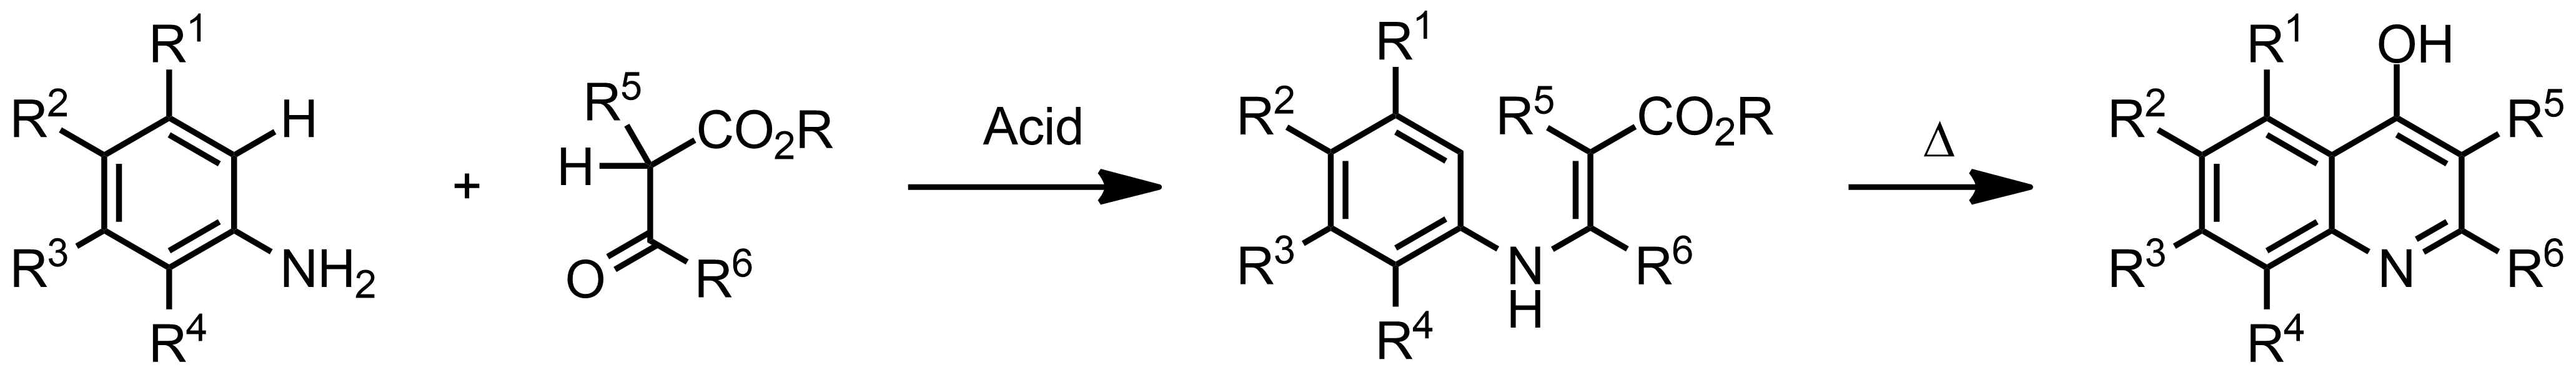 Schematic representation of the Conrad-Limpach Synthesis.